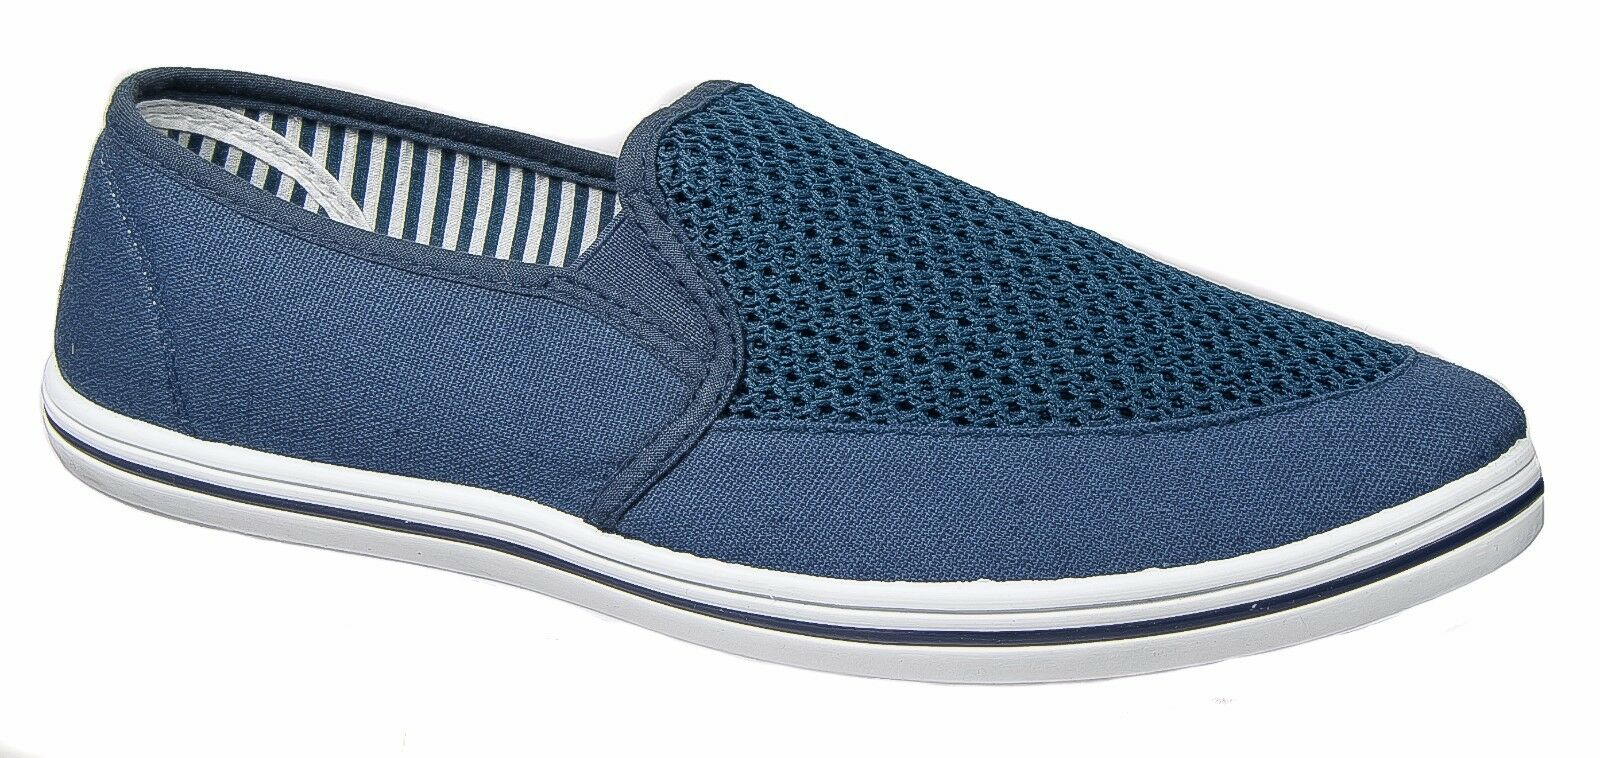 mens yachting shoes navy blue casual slip on dek sizes 6